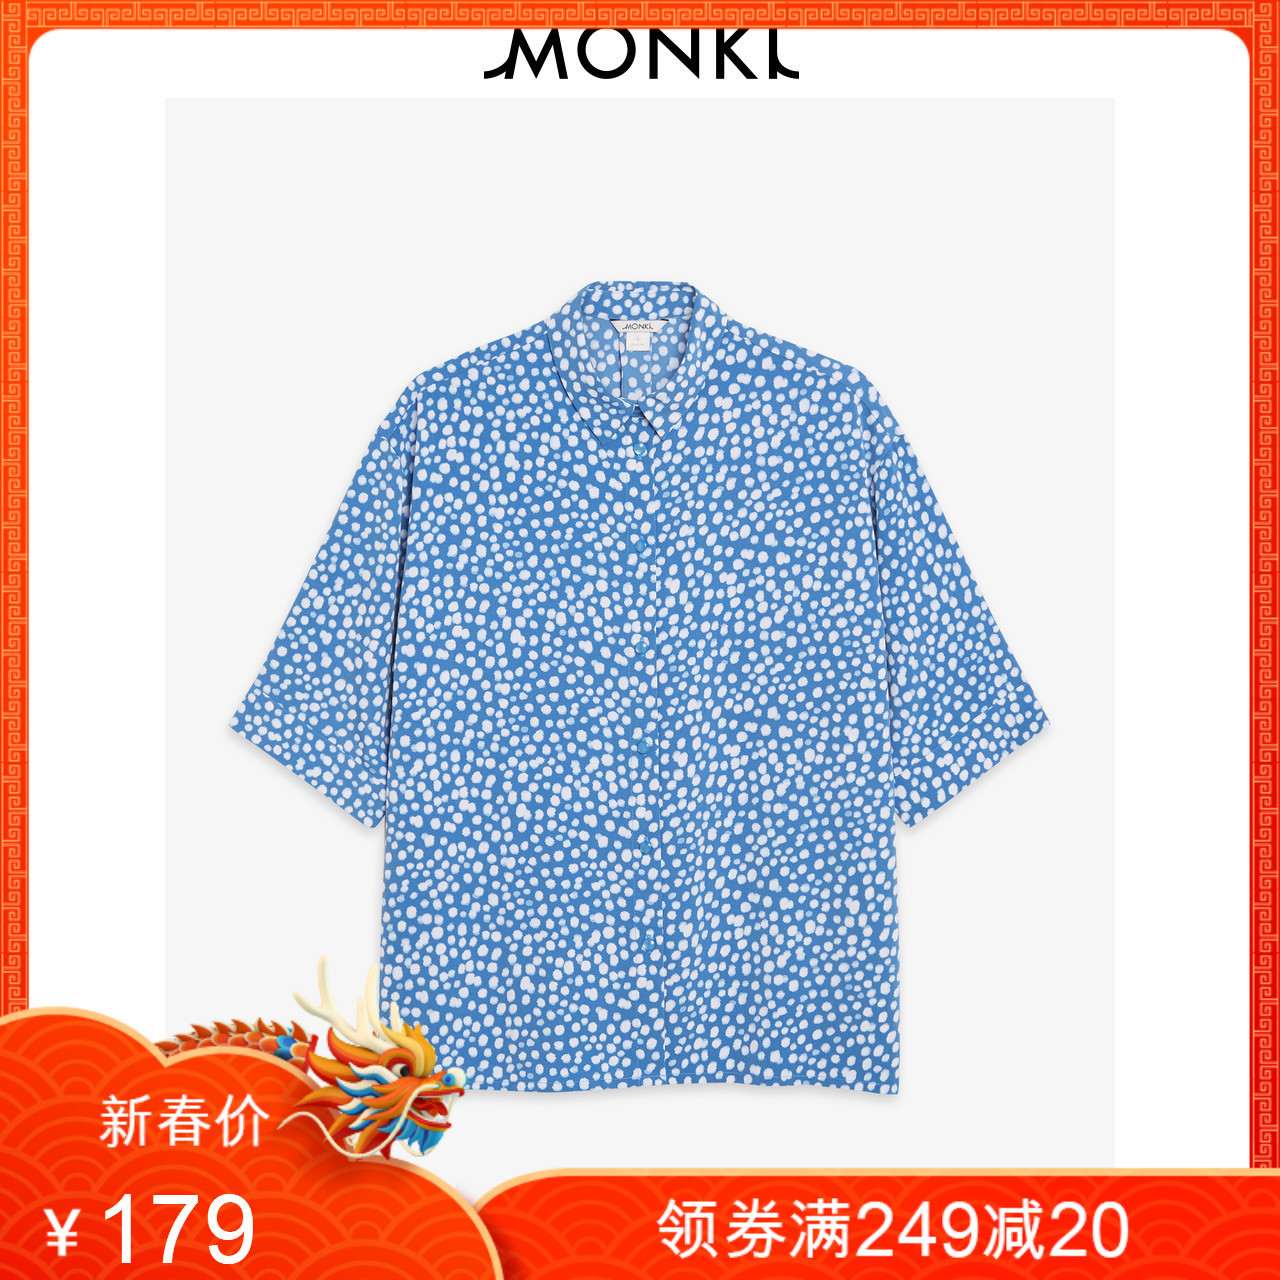 Monki2019 Spring New Style Casual Style Loose <font><b>Blue</b></font> <font><b>Polka</b></font> <font><b>Dots</b></font> Printed Short-sleeved <font><b>Shirt</b></font> Women's 0565209 image